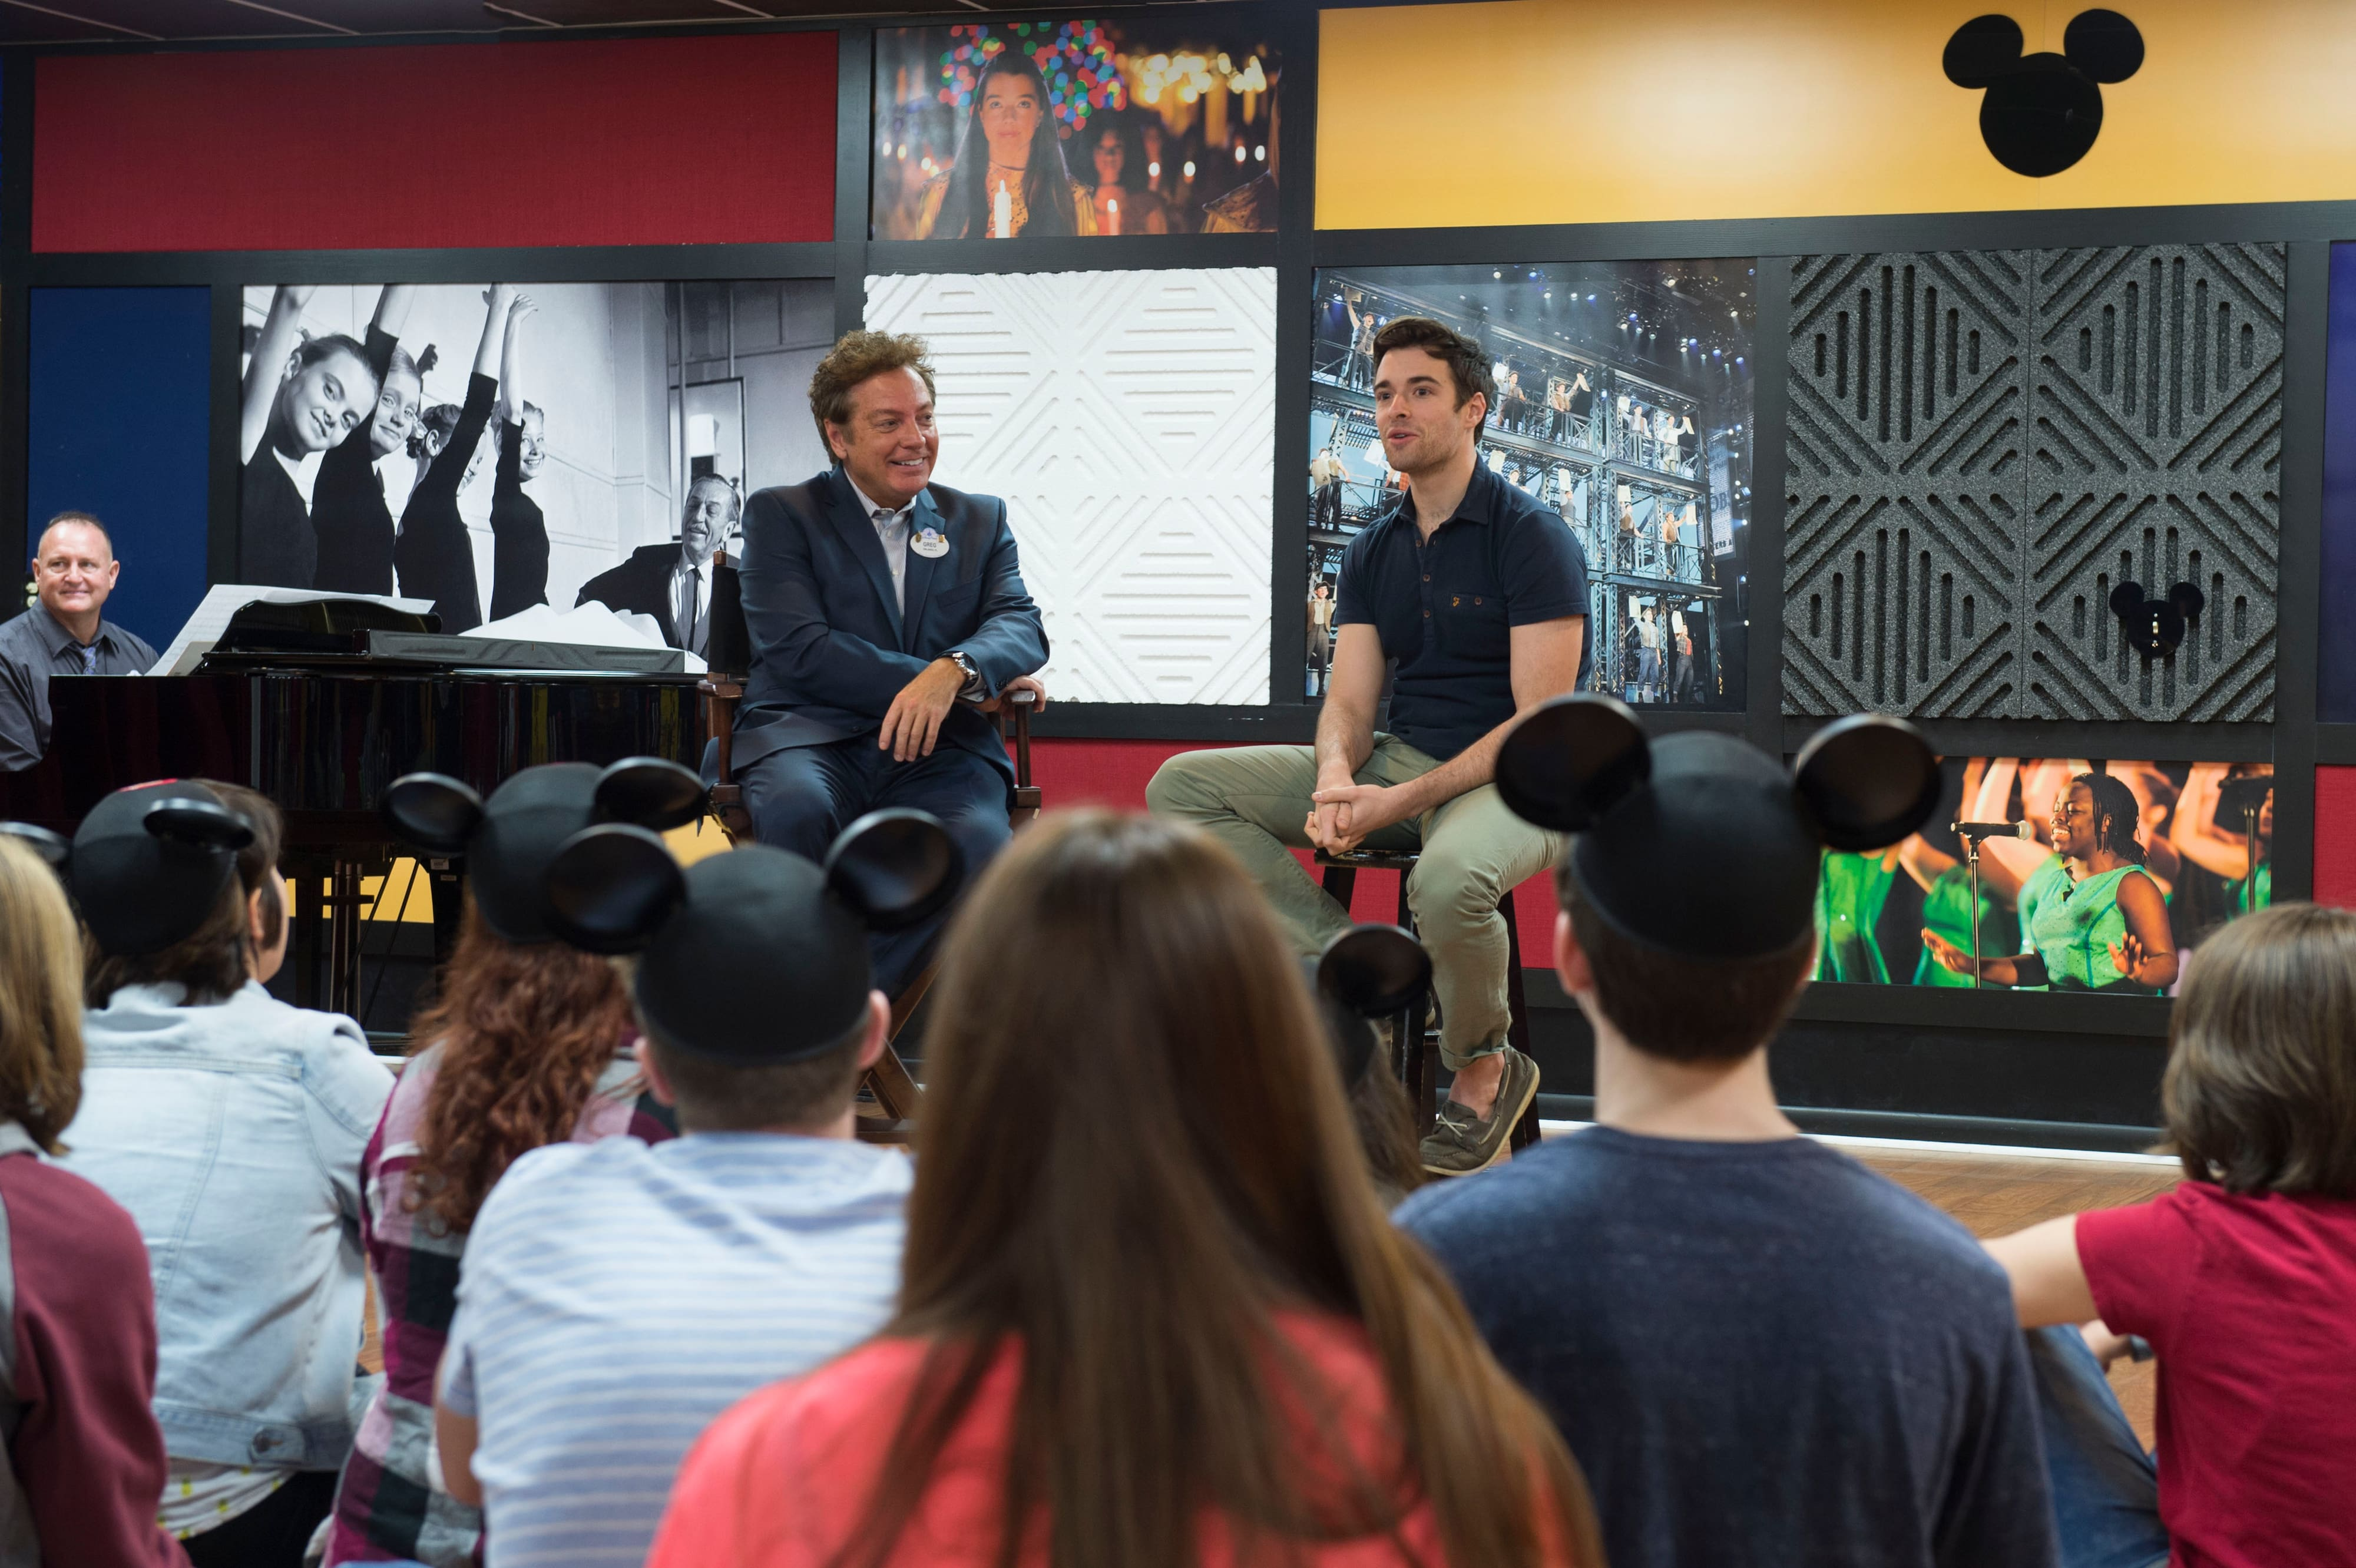 """Former """"Newsies"""" Star Returns to Disney Roots for a Special Disney Performing Arts Workshop Visit"""